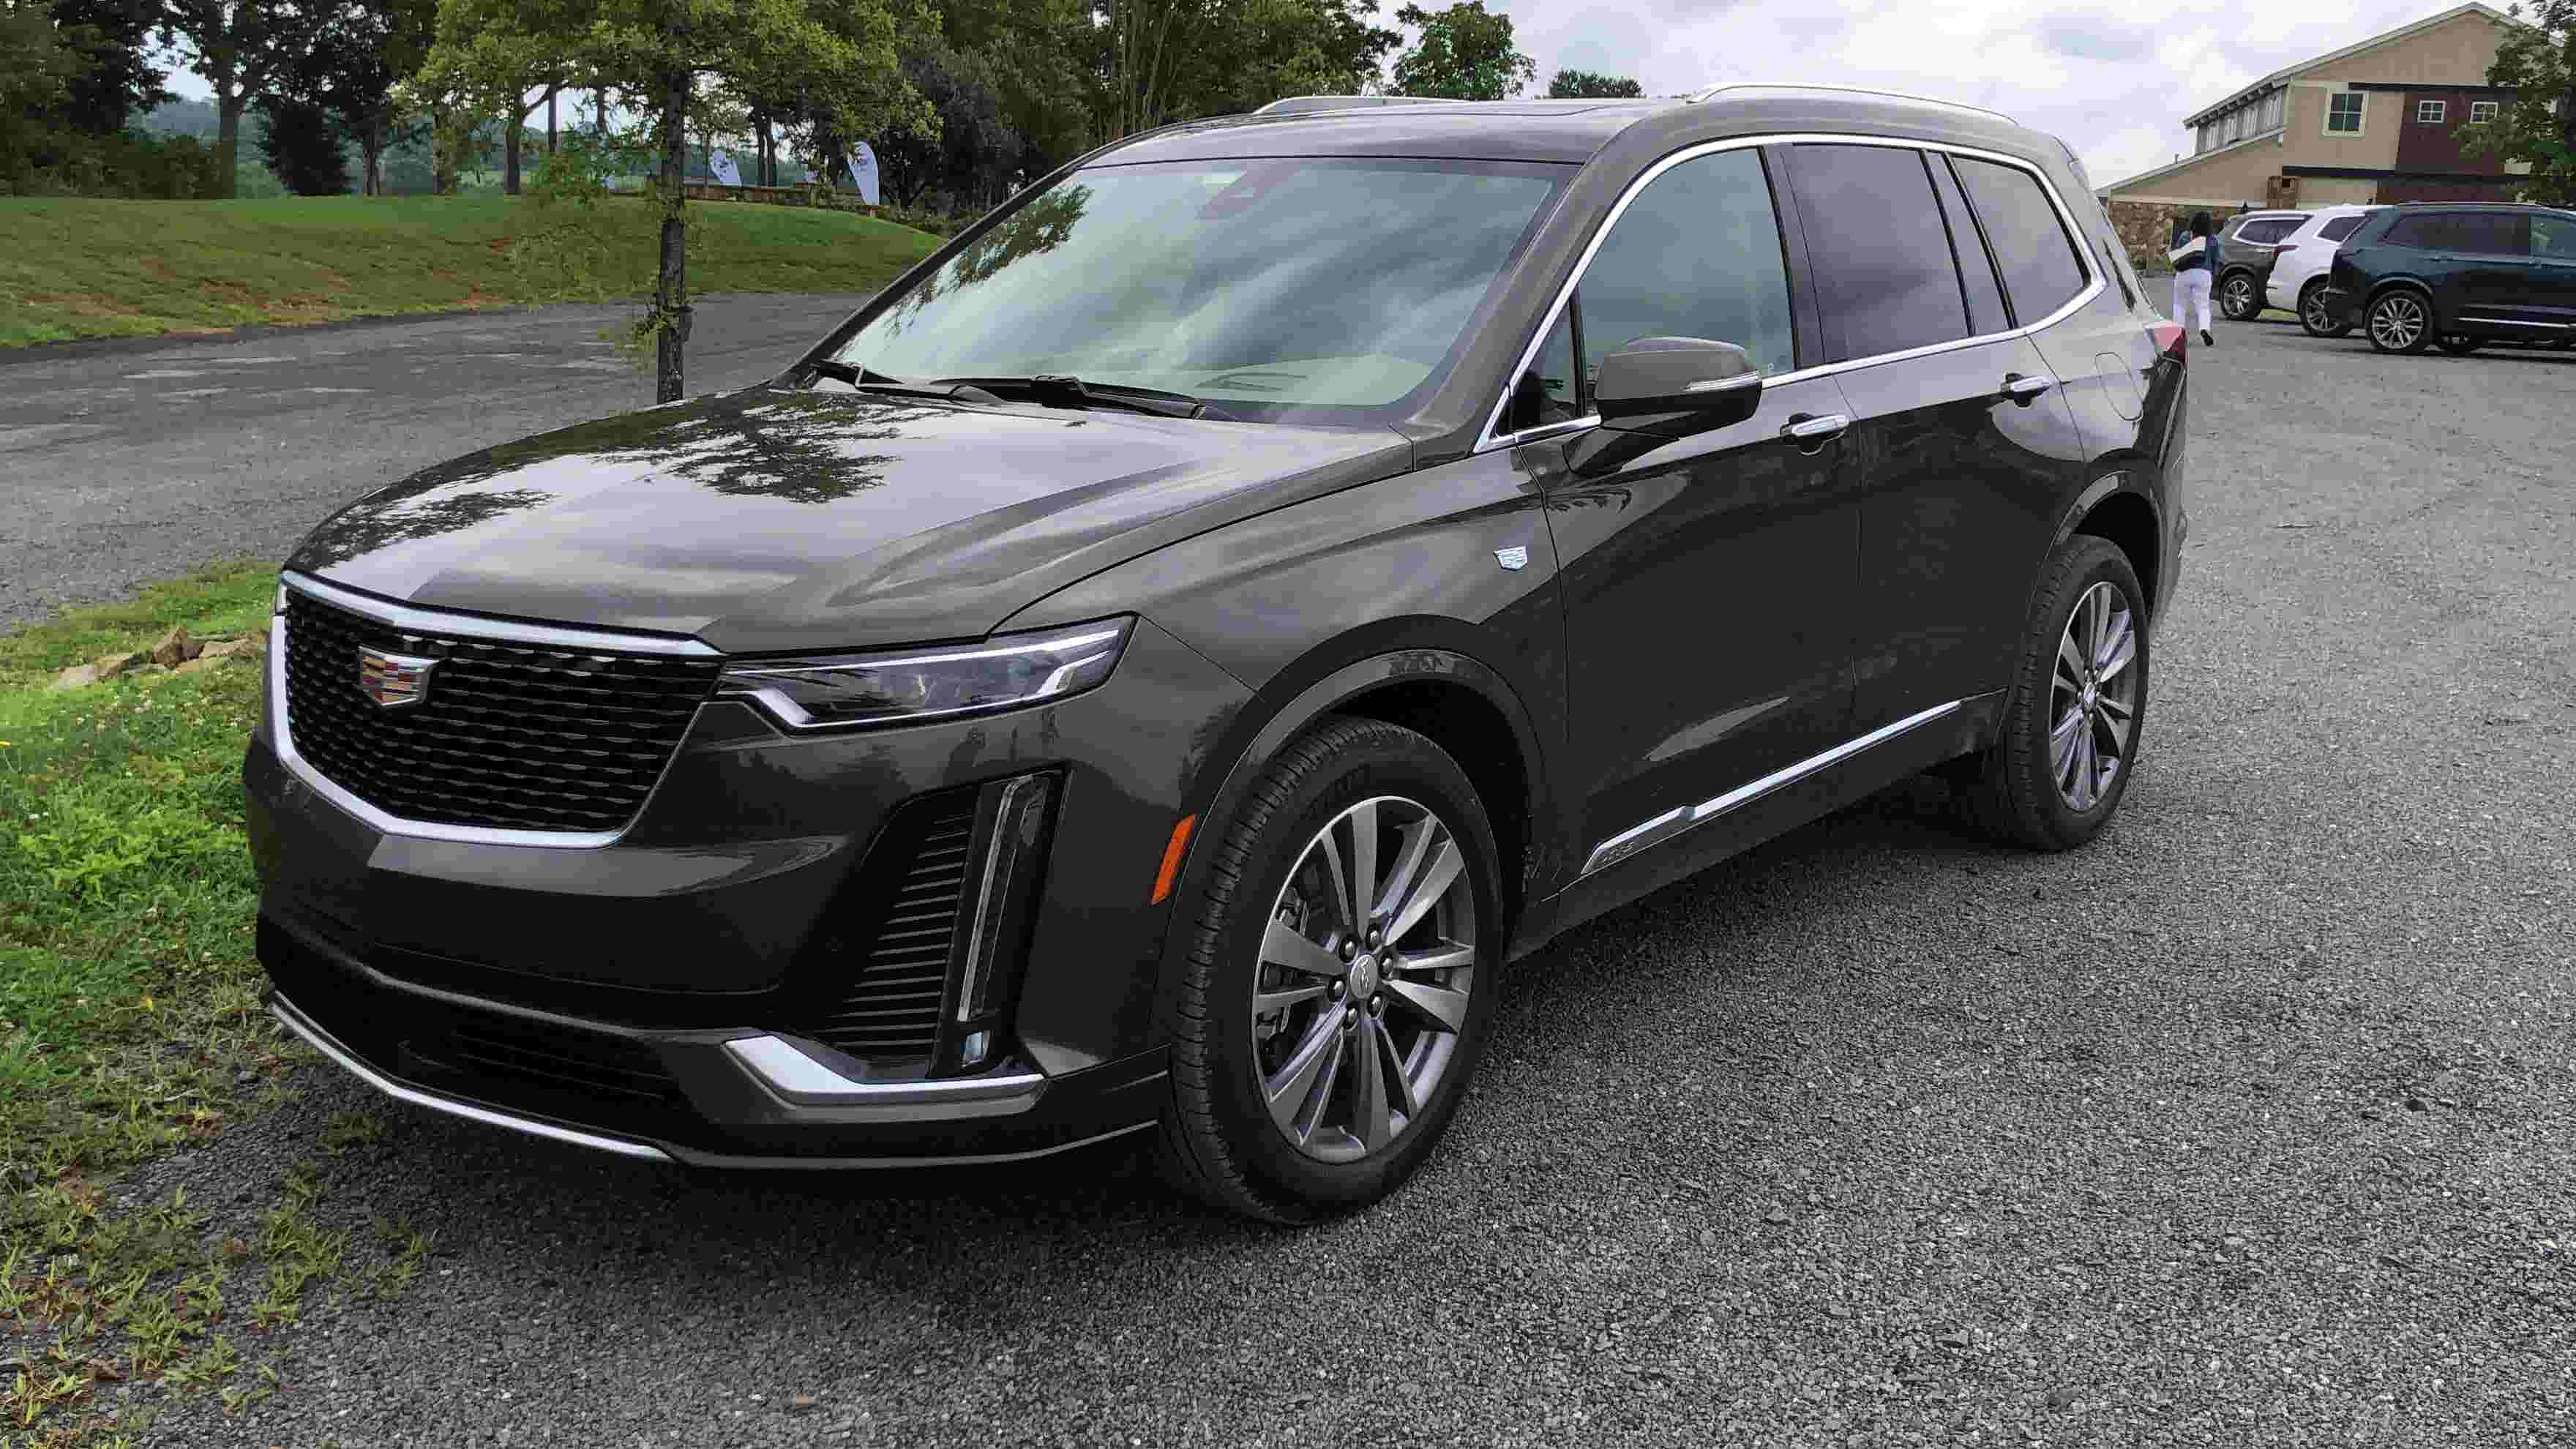 71 Gallery of Cadillac Xt6 2020 Speed Test with Cadillac Xt6 2020